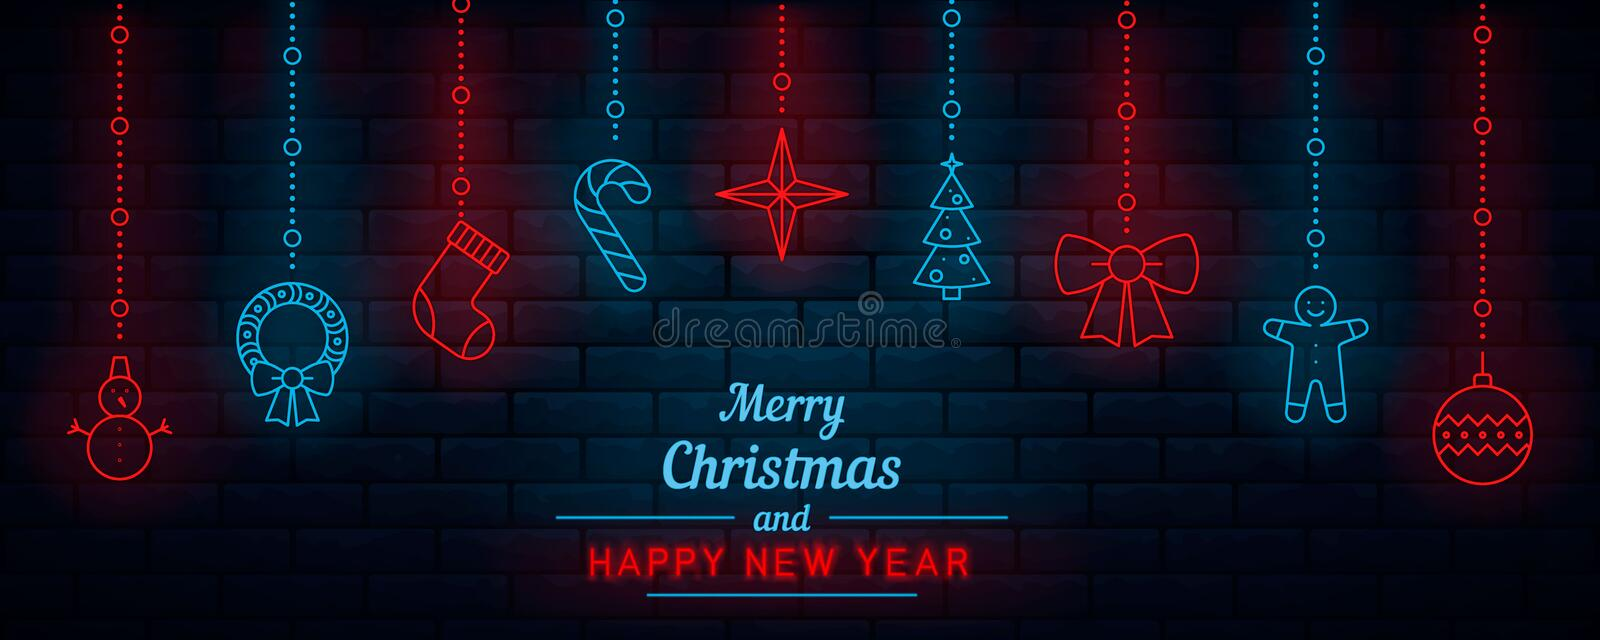 Christmas and New Year. Neon. royalty free illustration